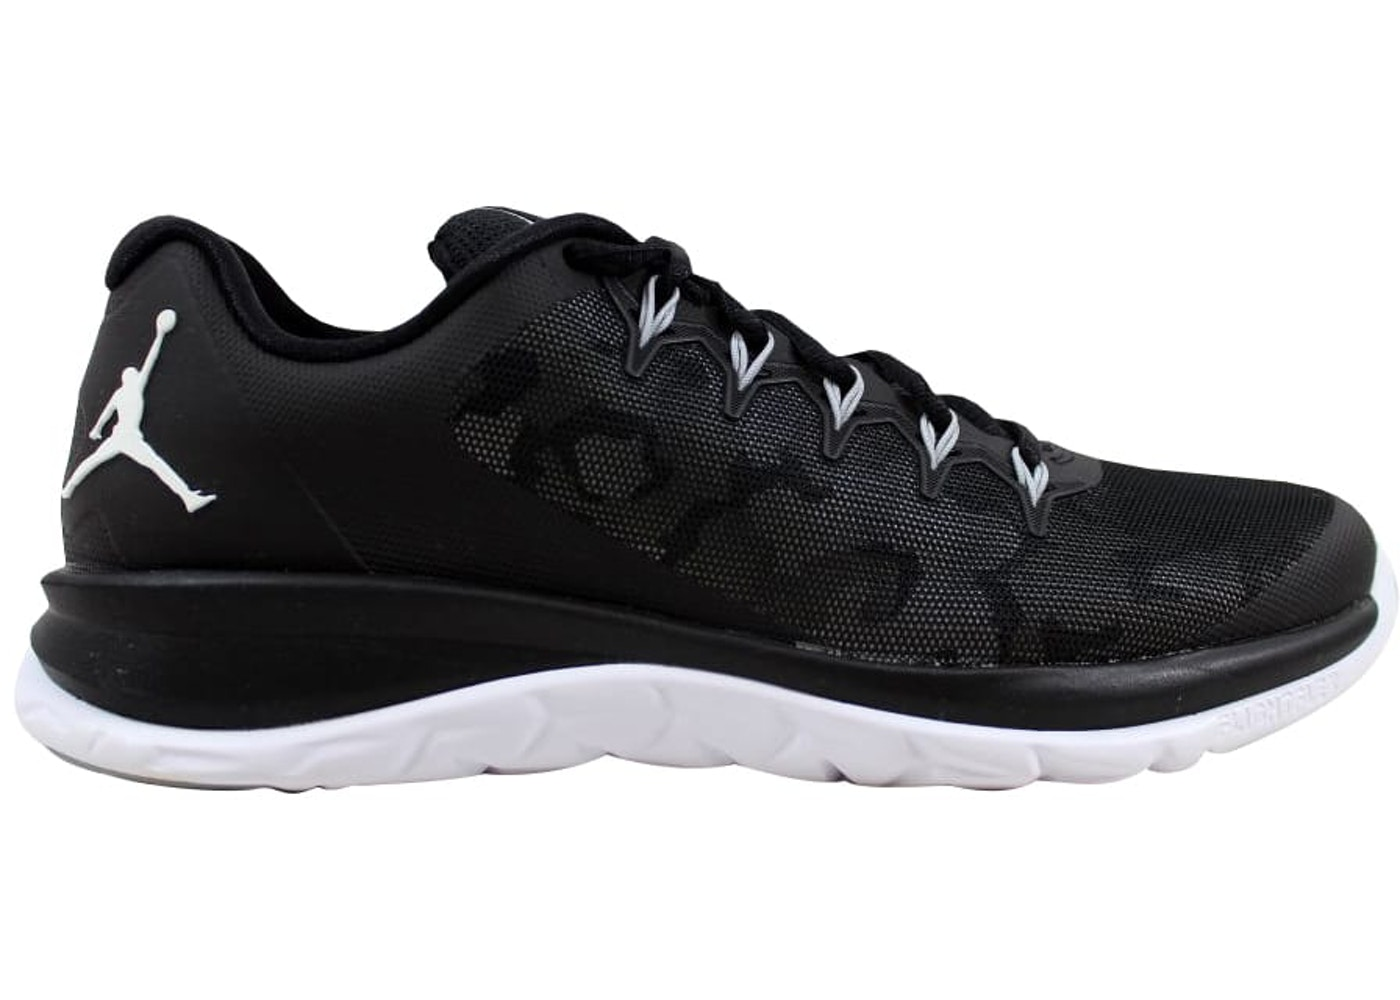 sentido cisne banco  Air Jordan Flight Runner 2 Black/Wolf Grey-White - 715572-005